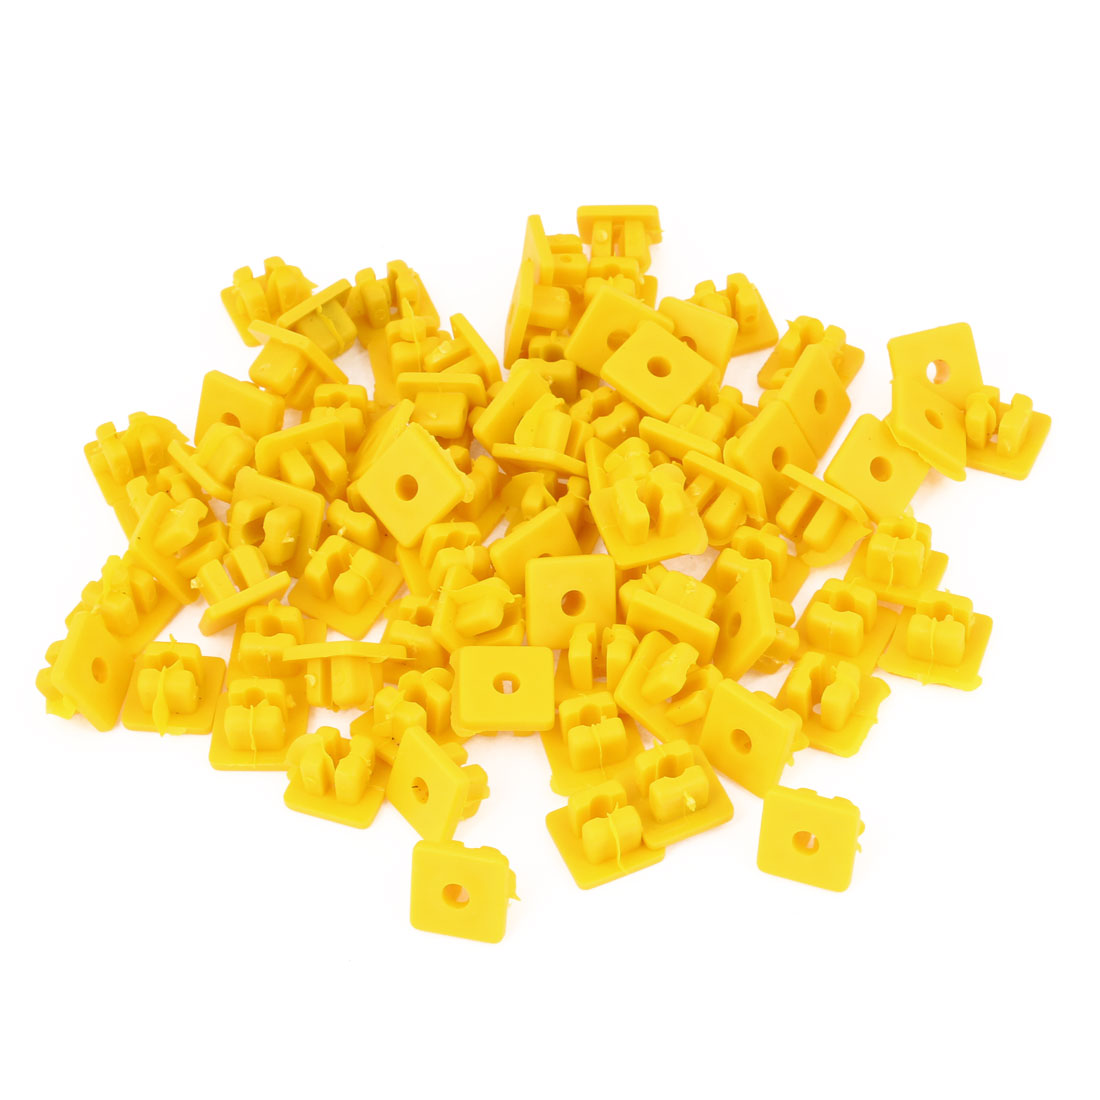 8.8mm x 8.2mm Hole Plastic Push Type Rivet Clip Yellow 100pcs for Car Door